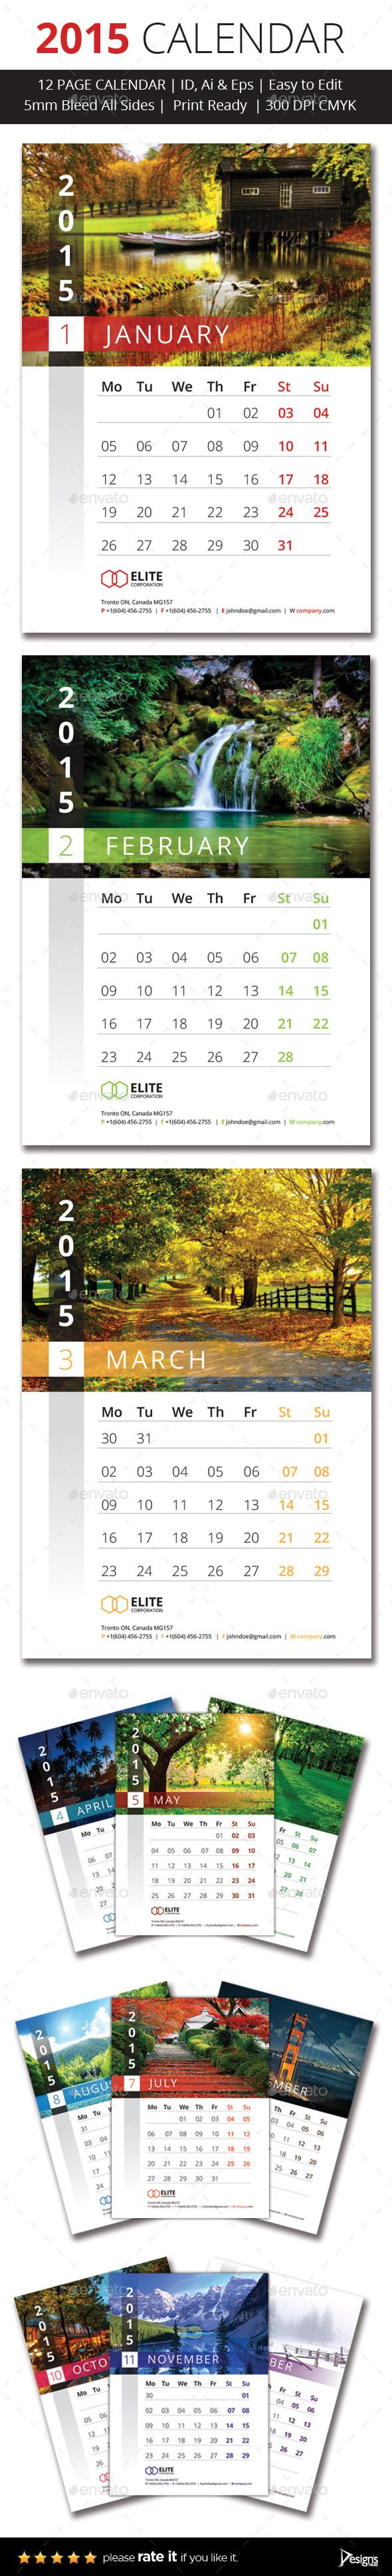 2015 Wall Calender Template | Buy and Download: http://graphicriver.net/item/2015-wall-calender/9749185?ref=ksioks